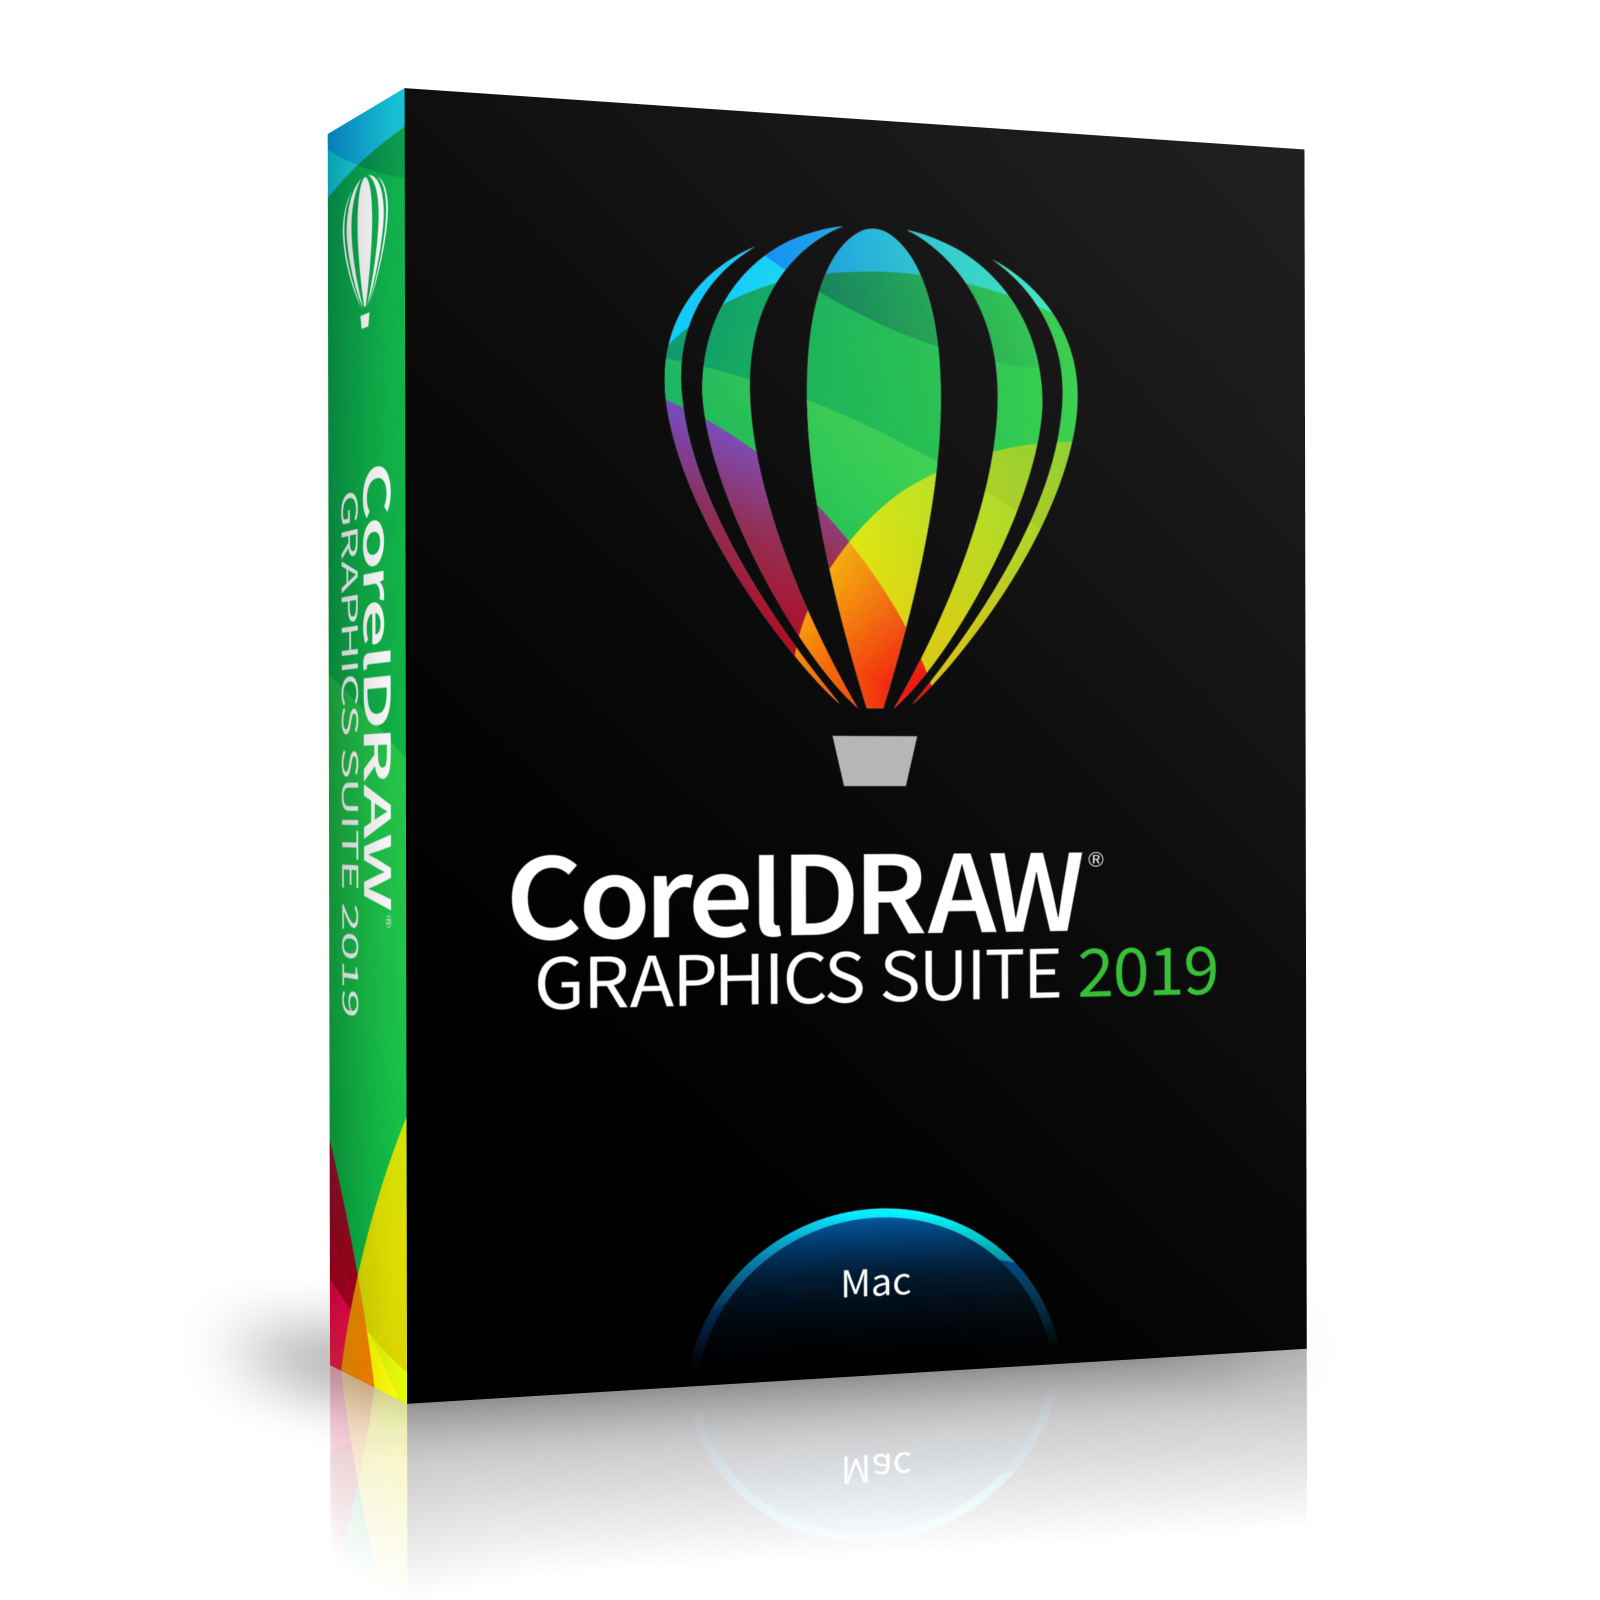 CorelDRAW Graphics Ste2019 EDULic Mac Single User)